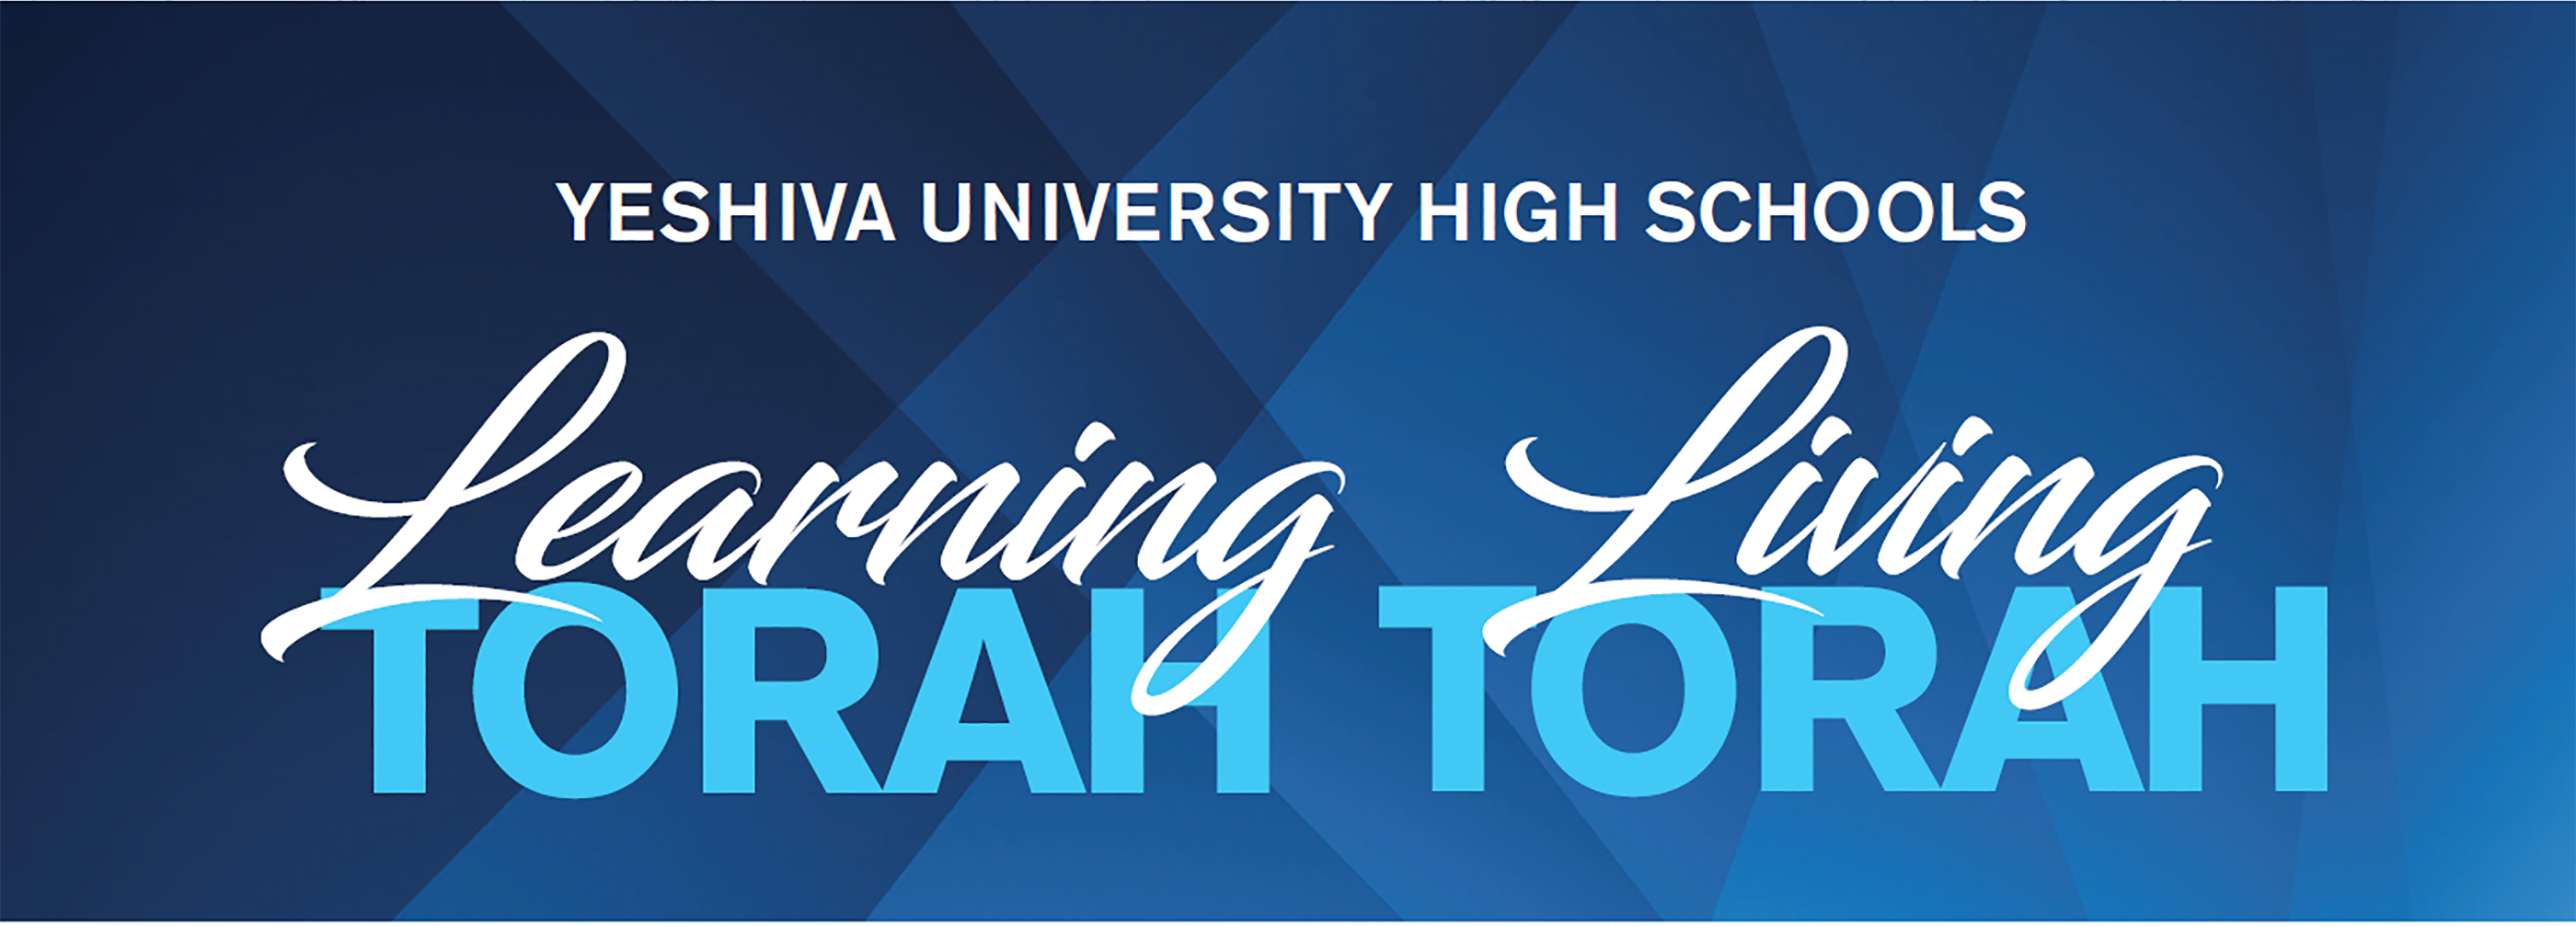 Yeshiva University High Schools Dinner   Learning Torah Living Torah